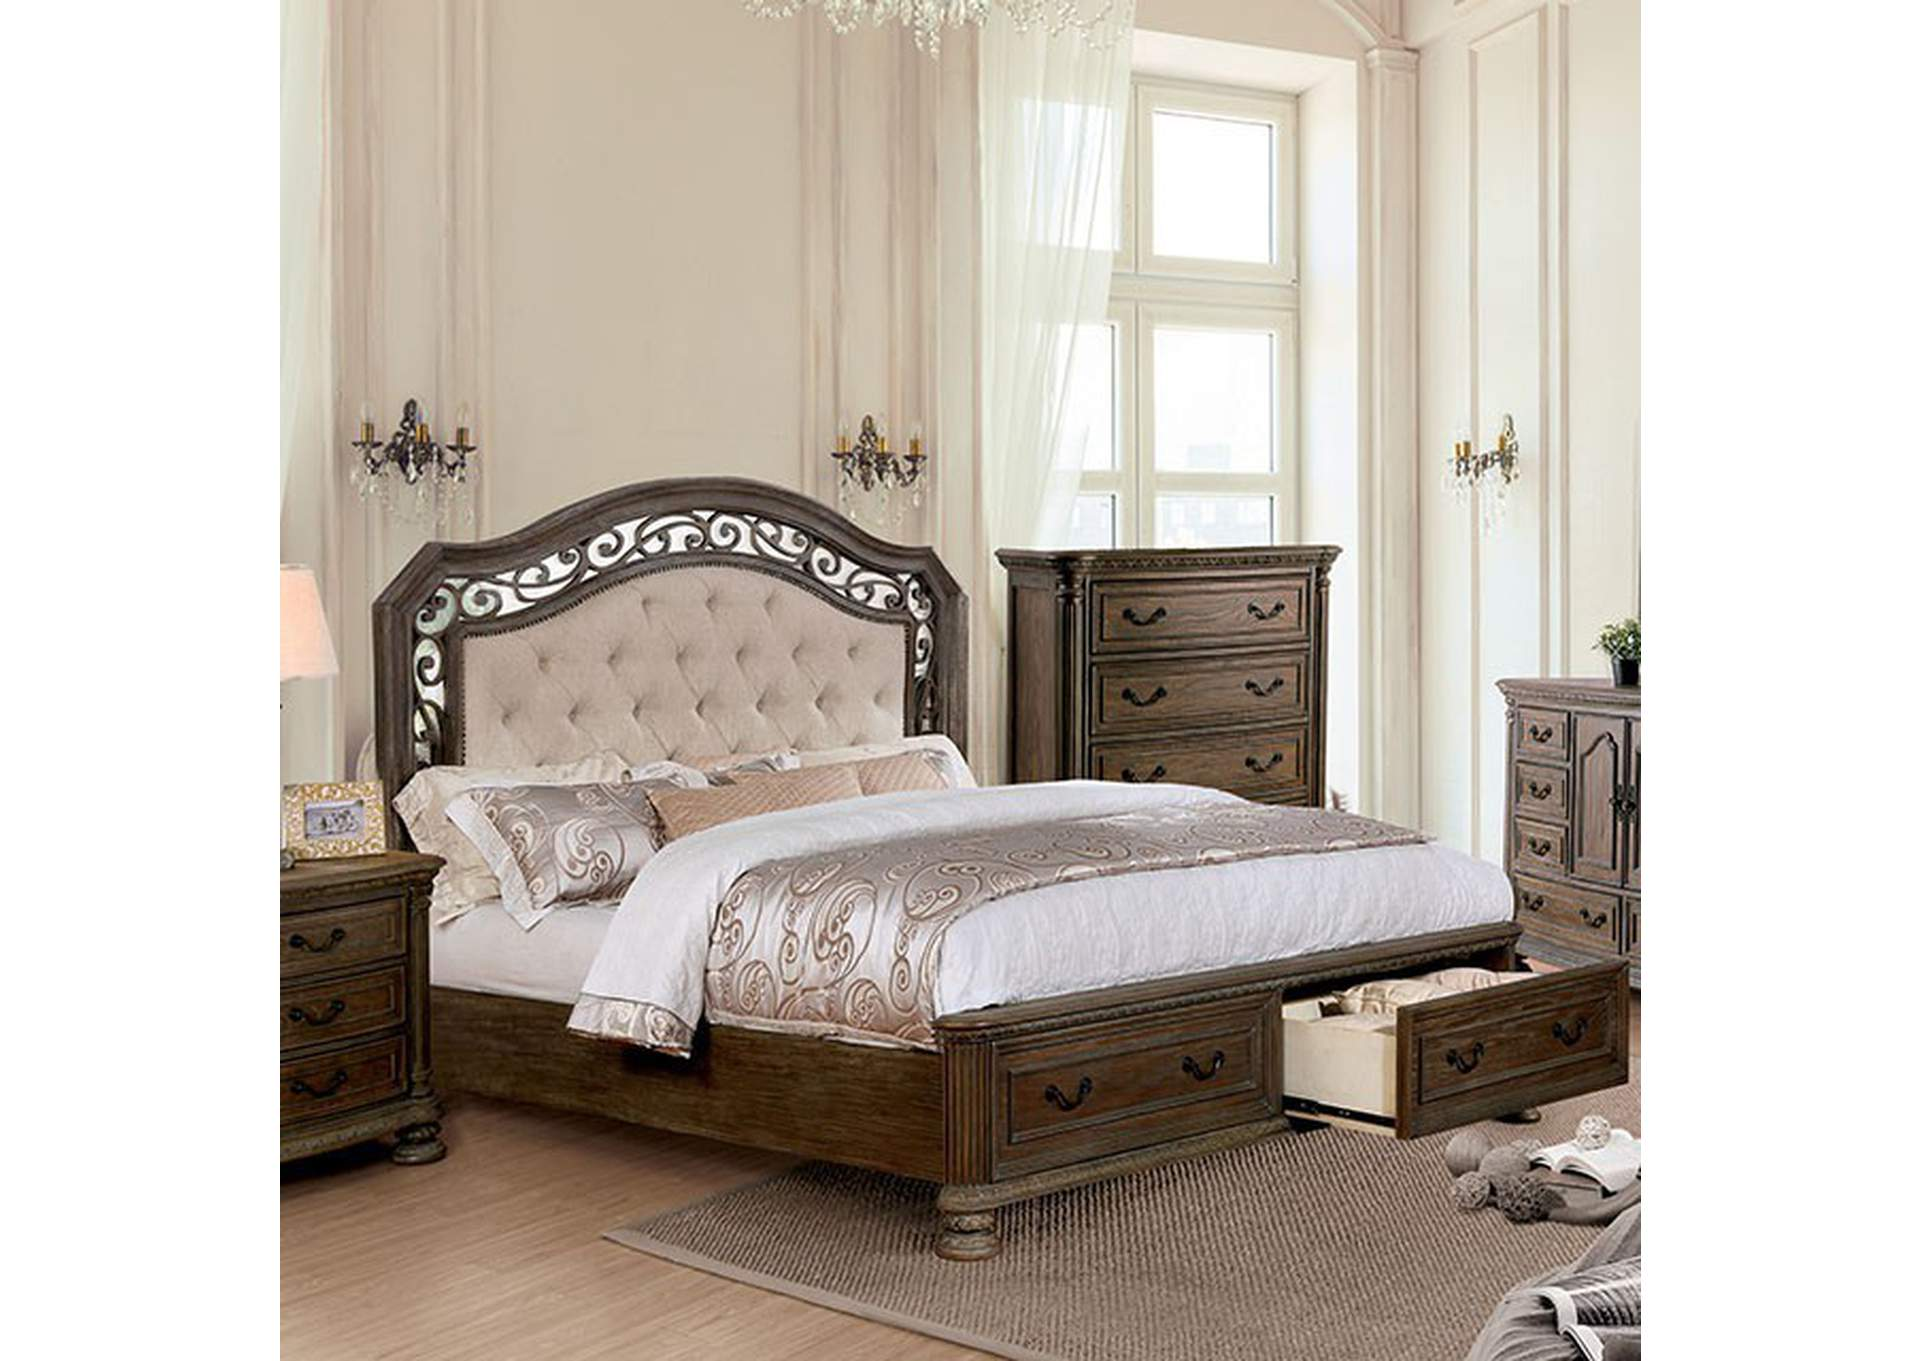 Persephone Rustic Natural Queen Storage Bed,Furniture of America